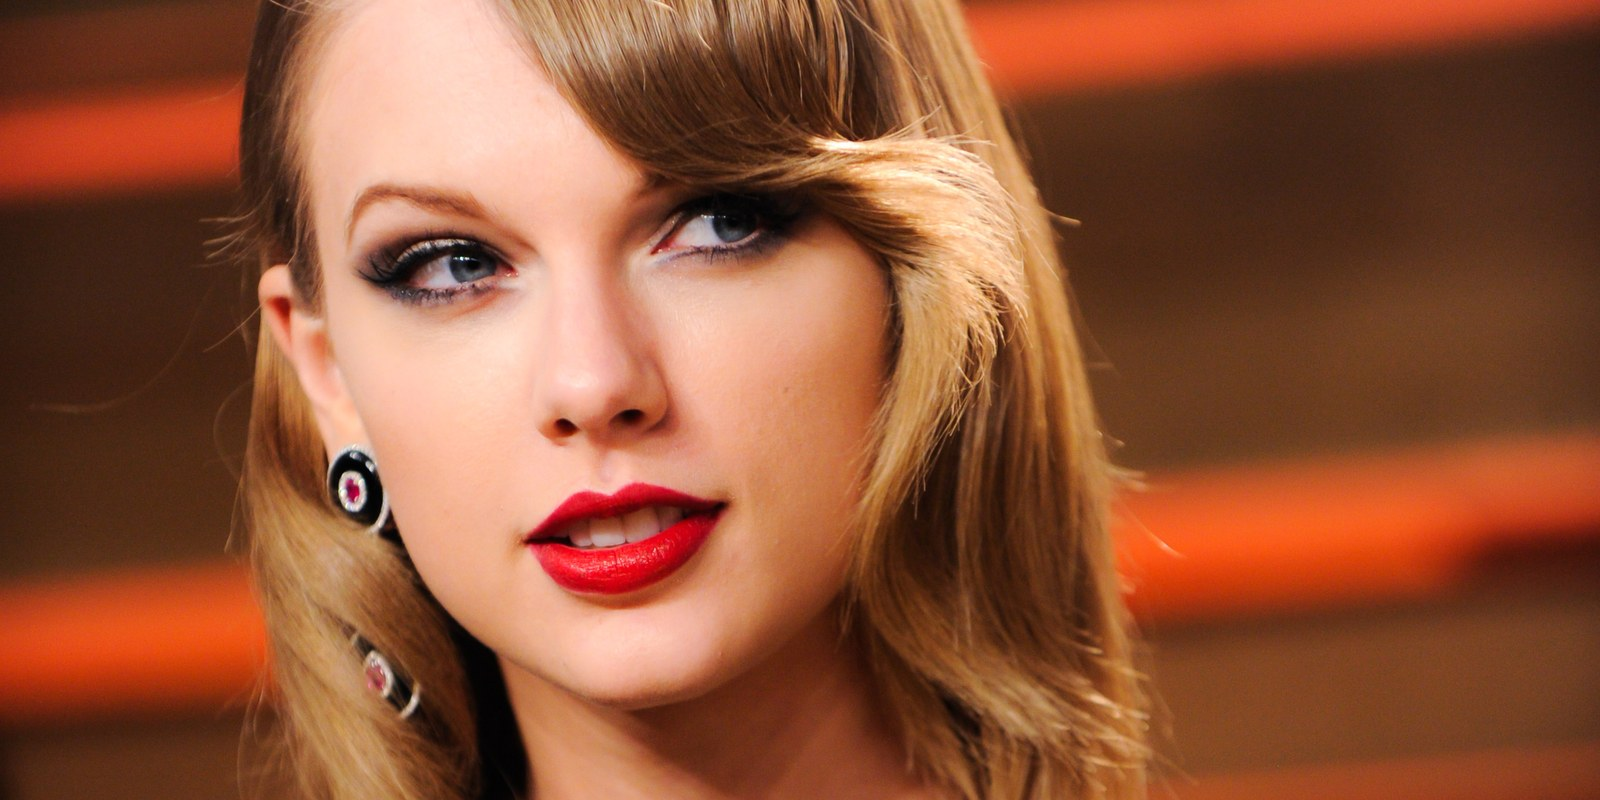 red lips taylor swift romantic picture desktop download